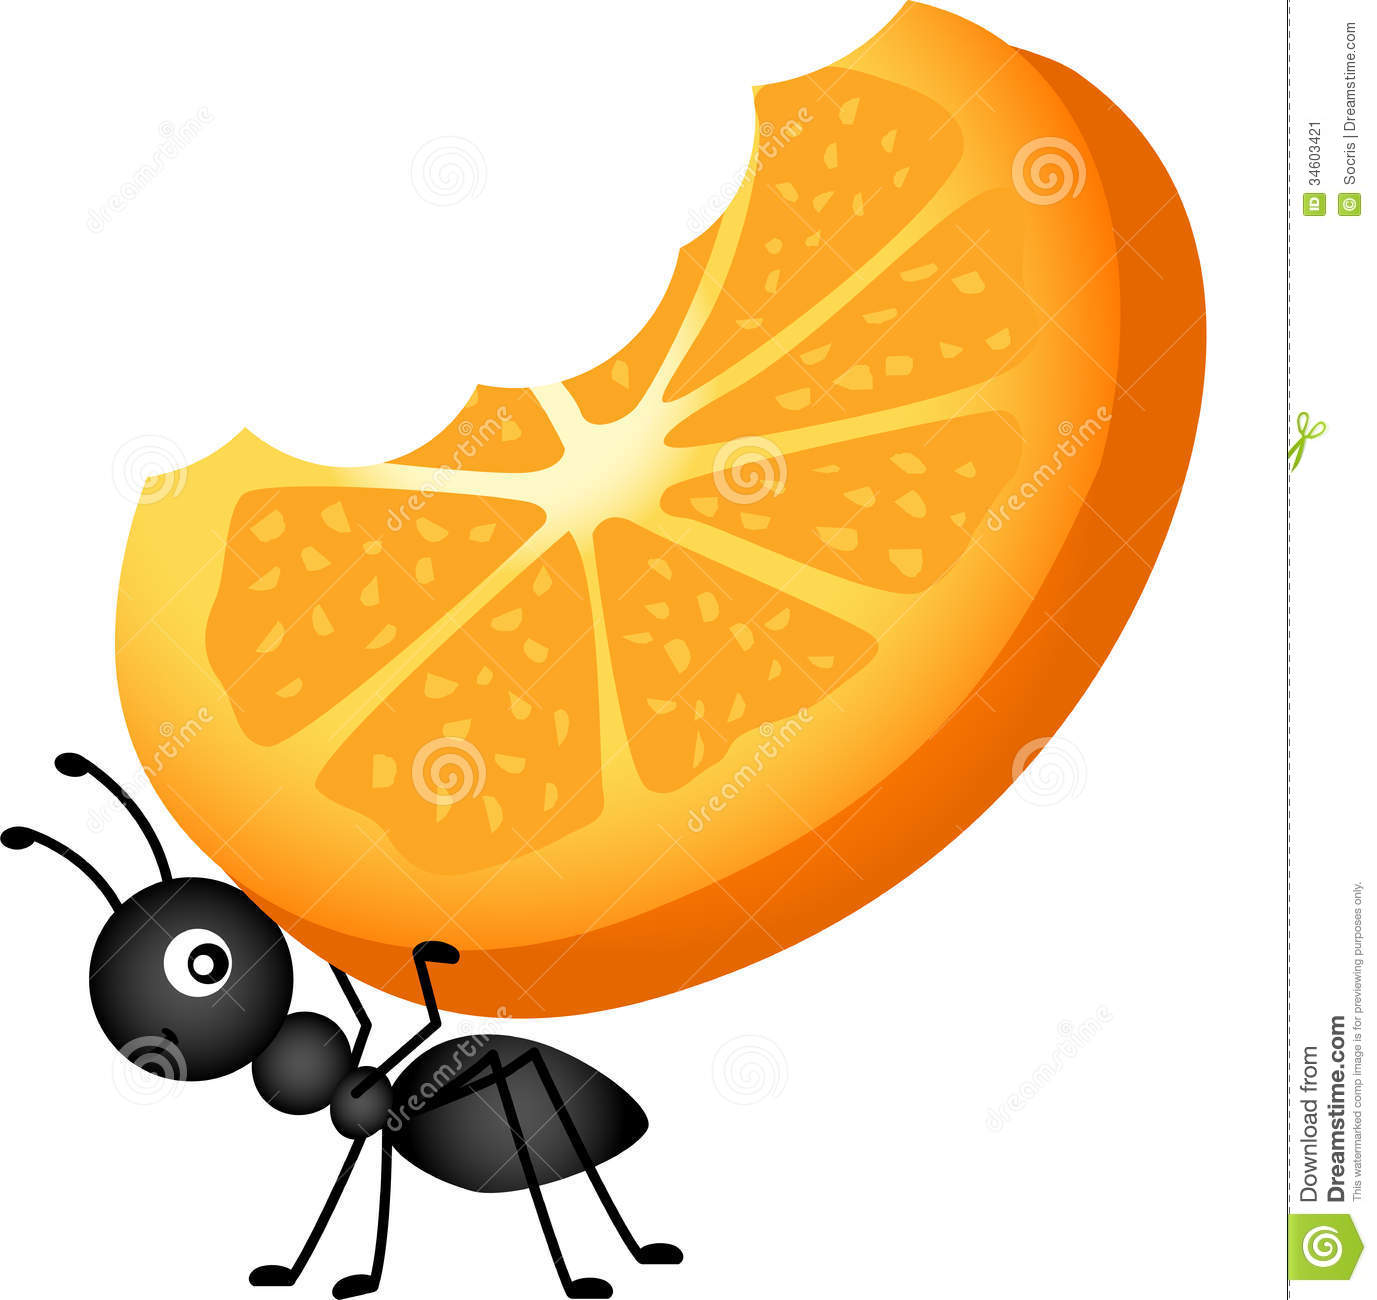 Ants Carrying Food Clipart.